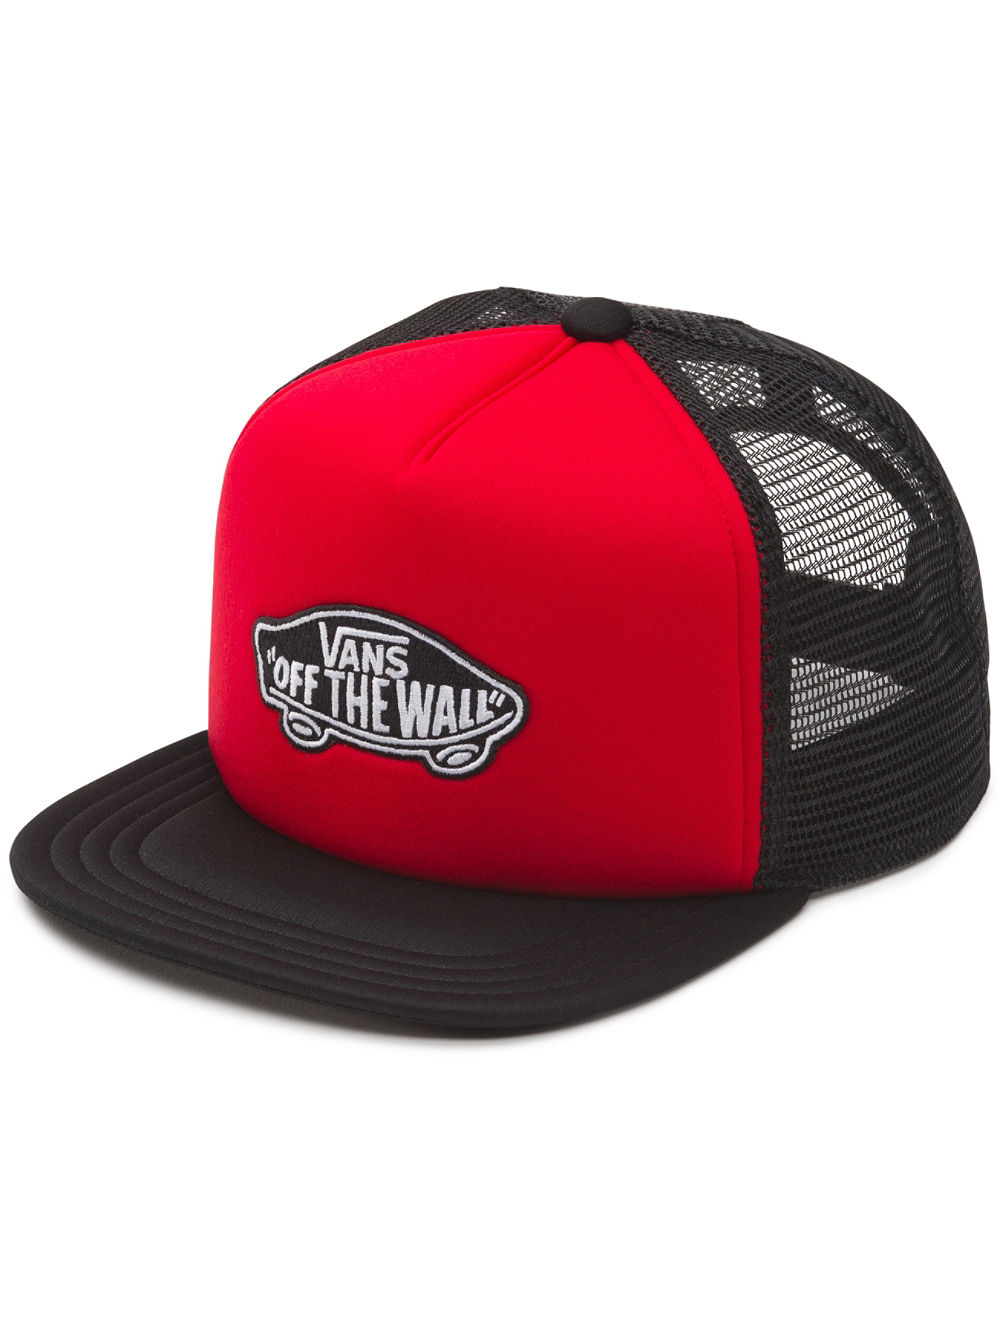 082d0106564 Buy Vans Classic Patch Trucker Cap Youth online at blue-tomato.com